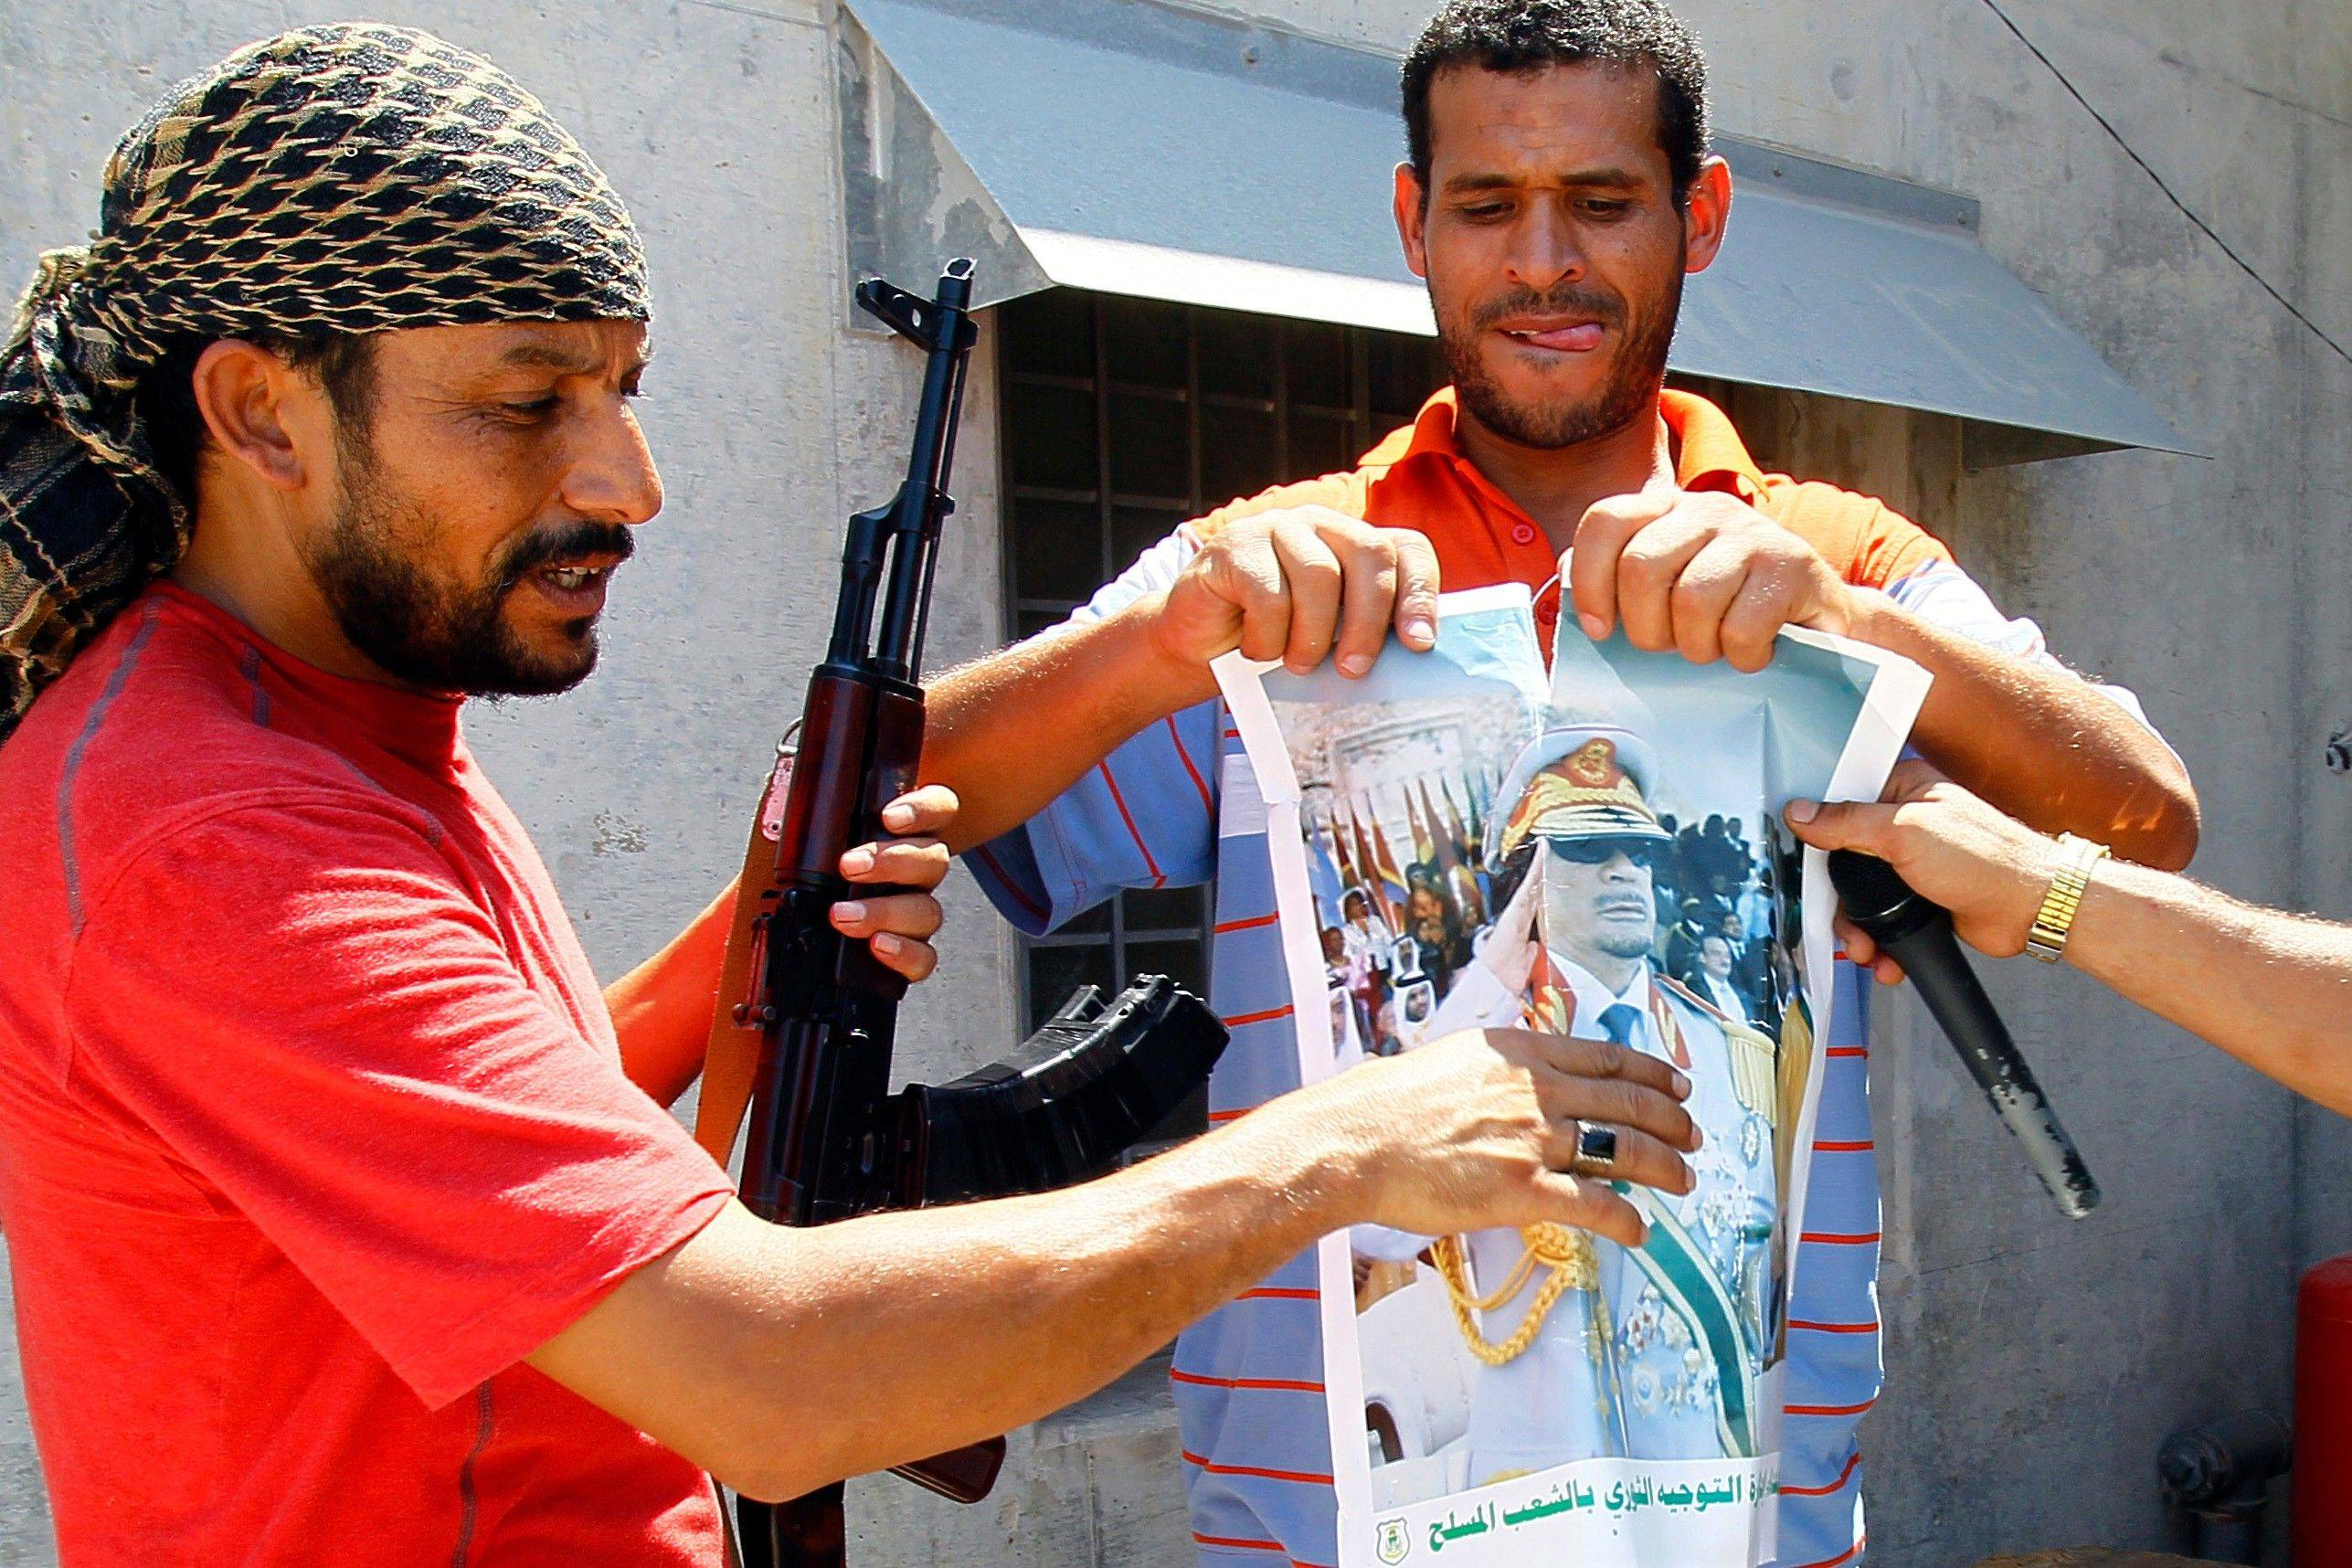 Libyan rebels tear up a portrait of Moammar Gadhafi on Wednesday inside his compound Bab al-Aziziya in Tripoli.